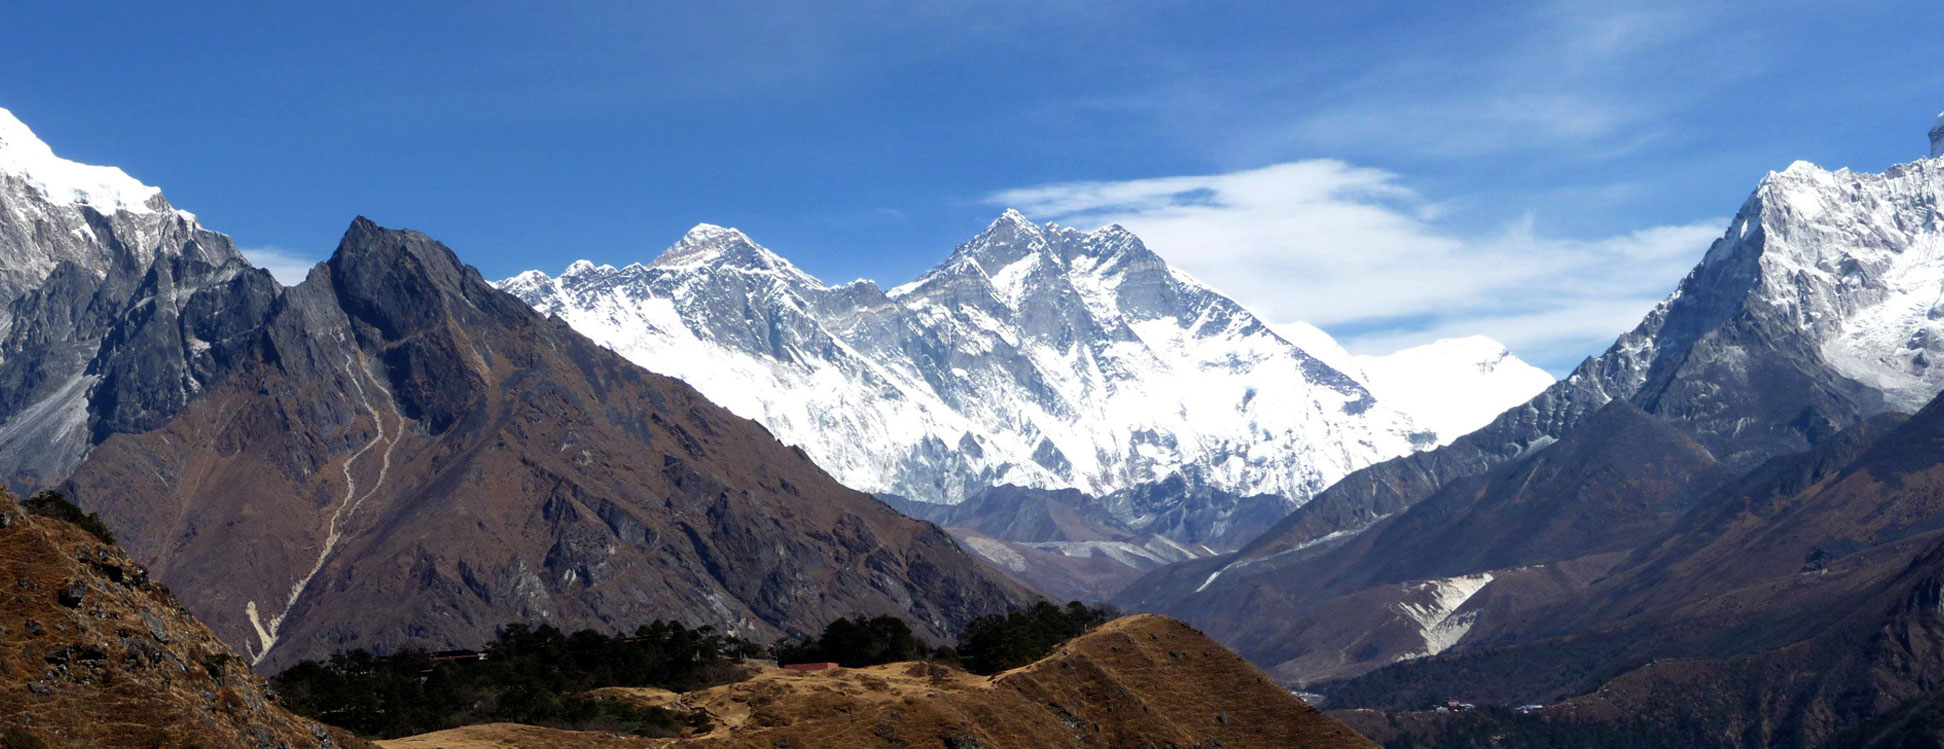 Everest Base Camp Trek from Phaplu